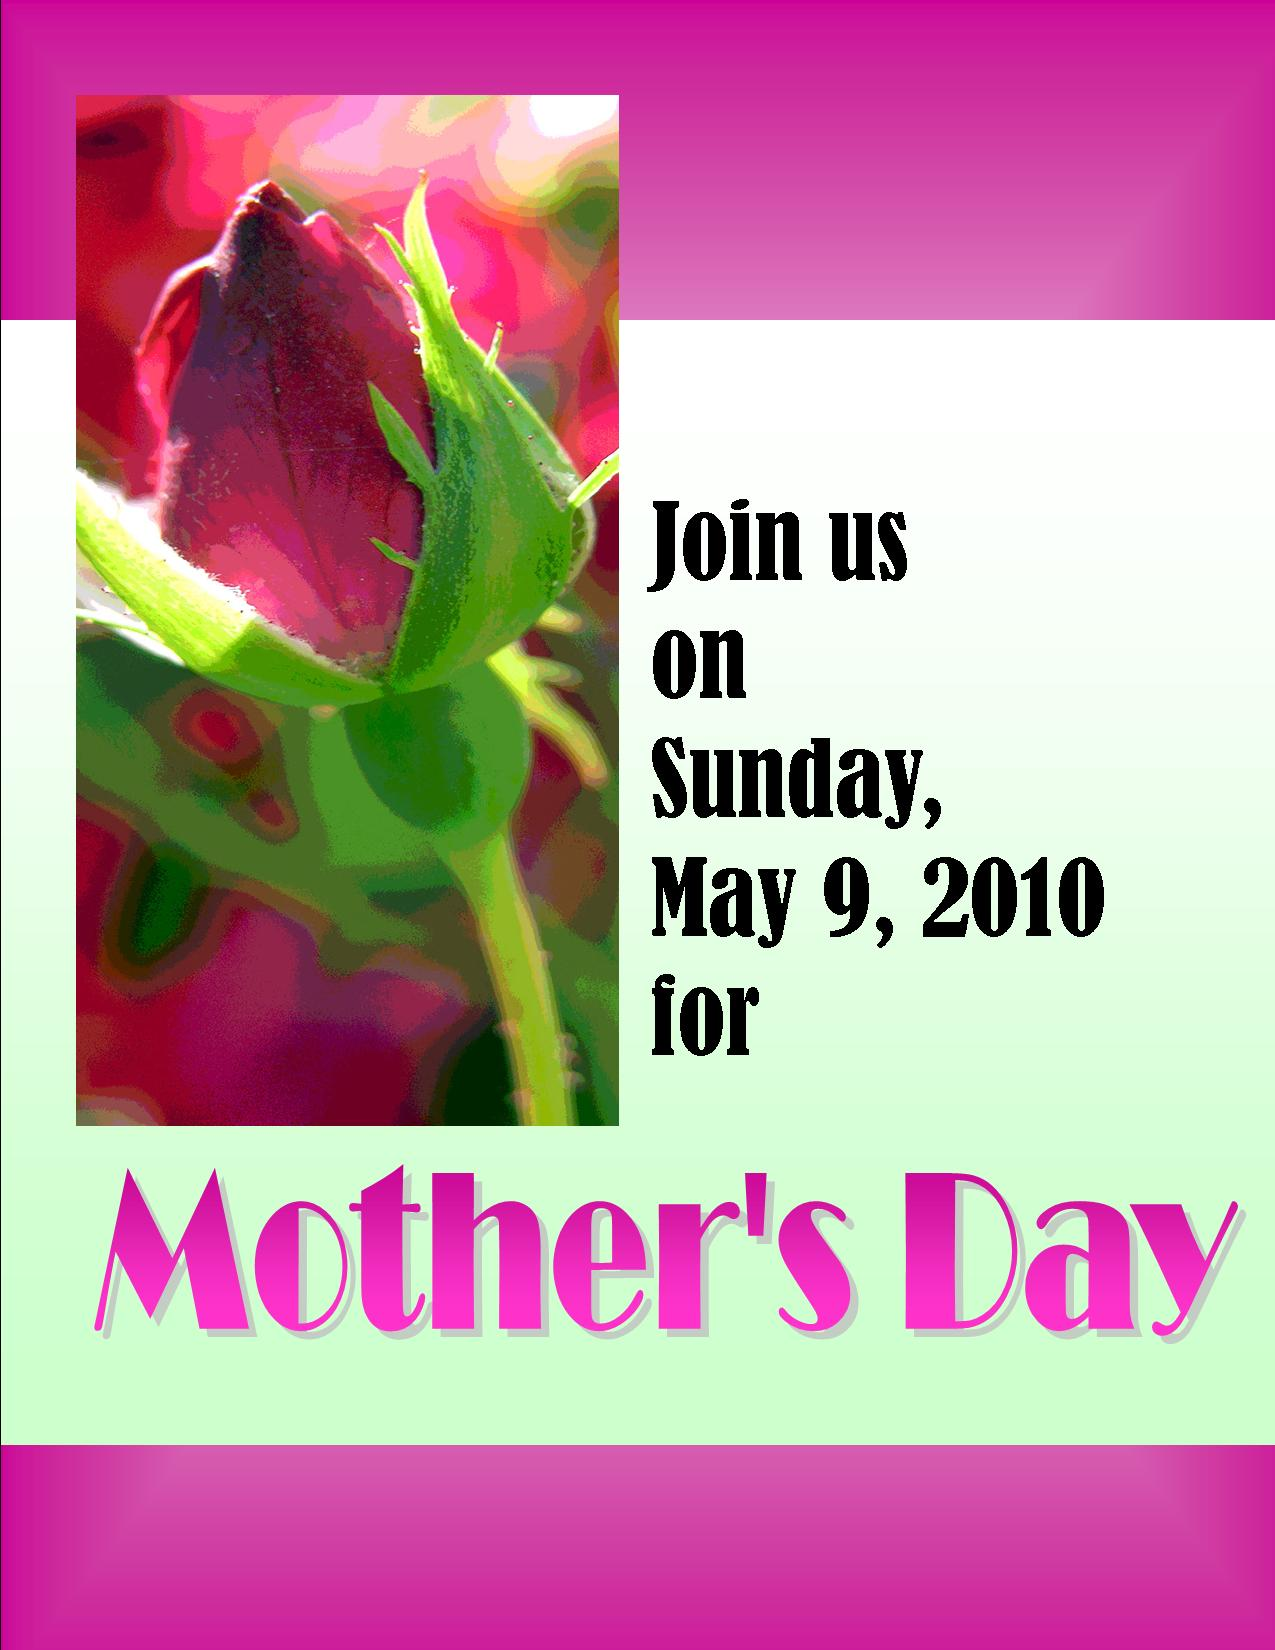 Mothers Day outreach – Mothers Day Invitation Cards